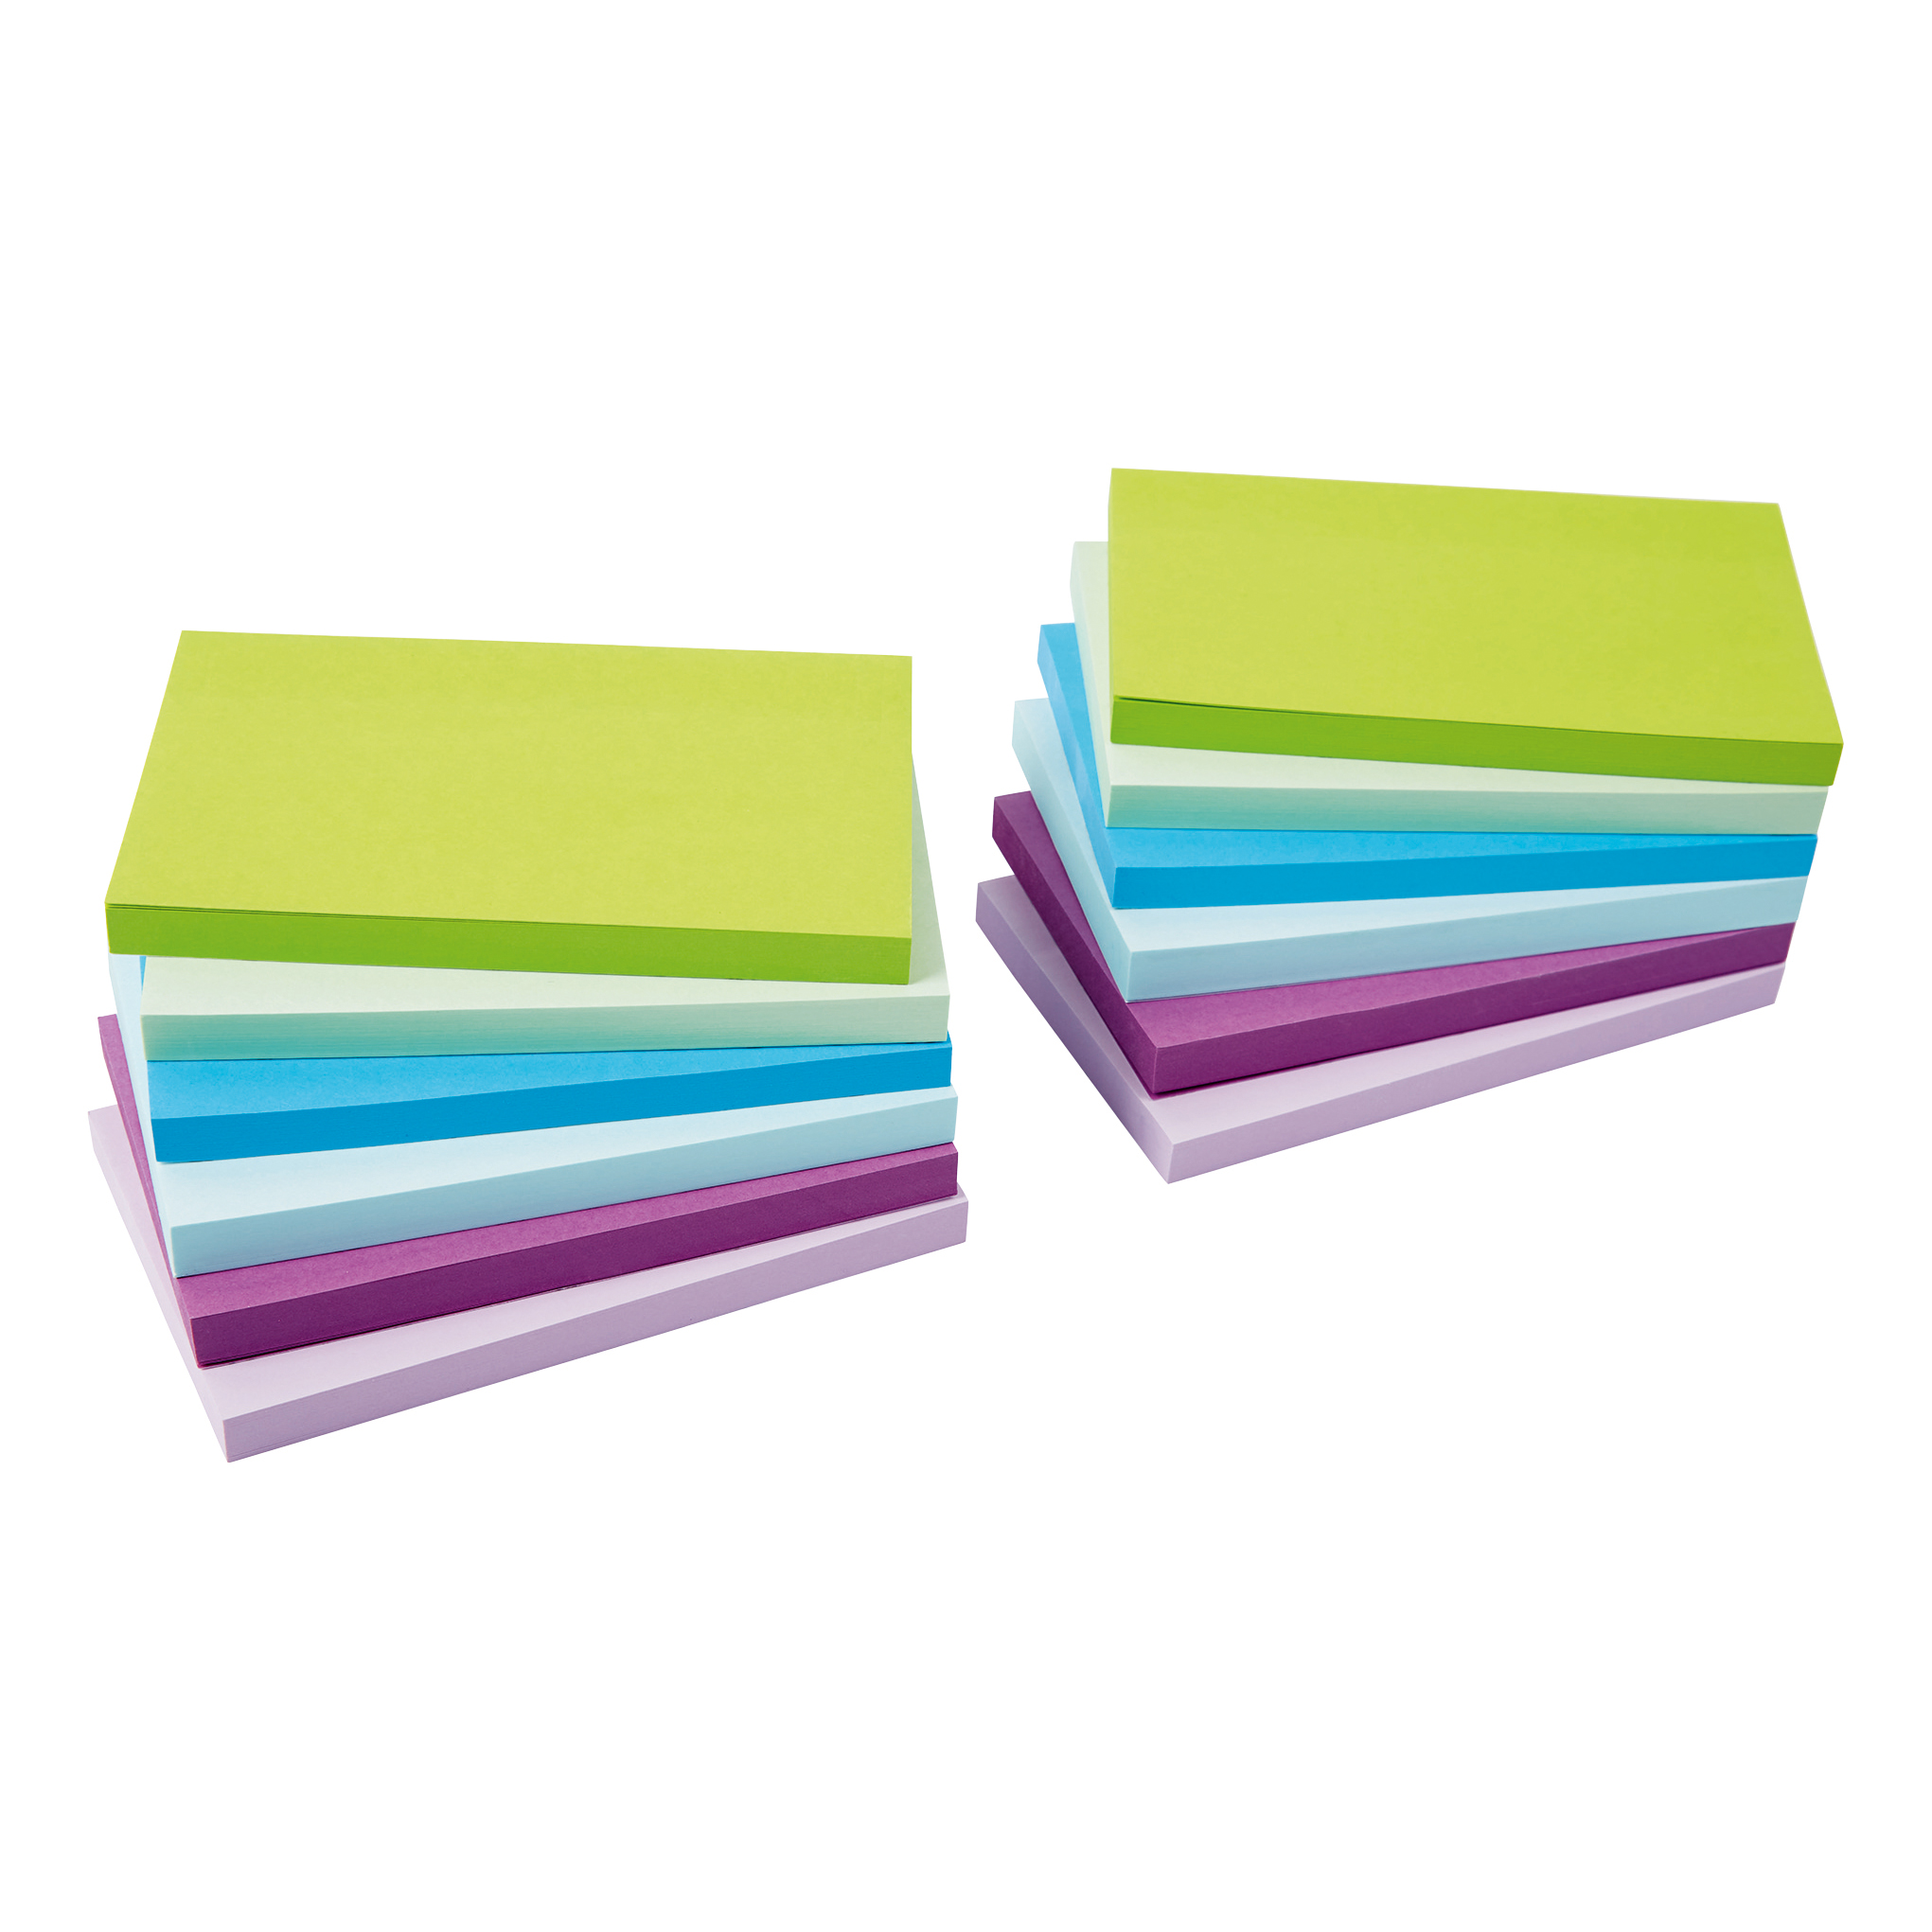 5 Star Office Re-Move Sticky Notes 76x127mm 6 Neon/Pastel Colours 100 Sheets per Pad [Pack of 12]